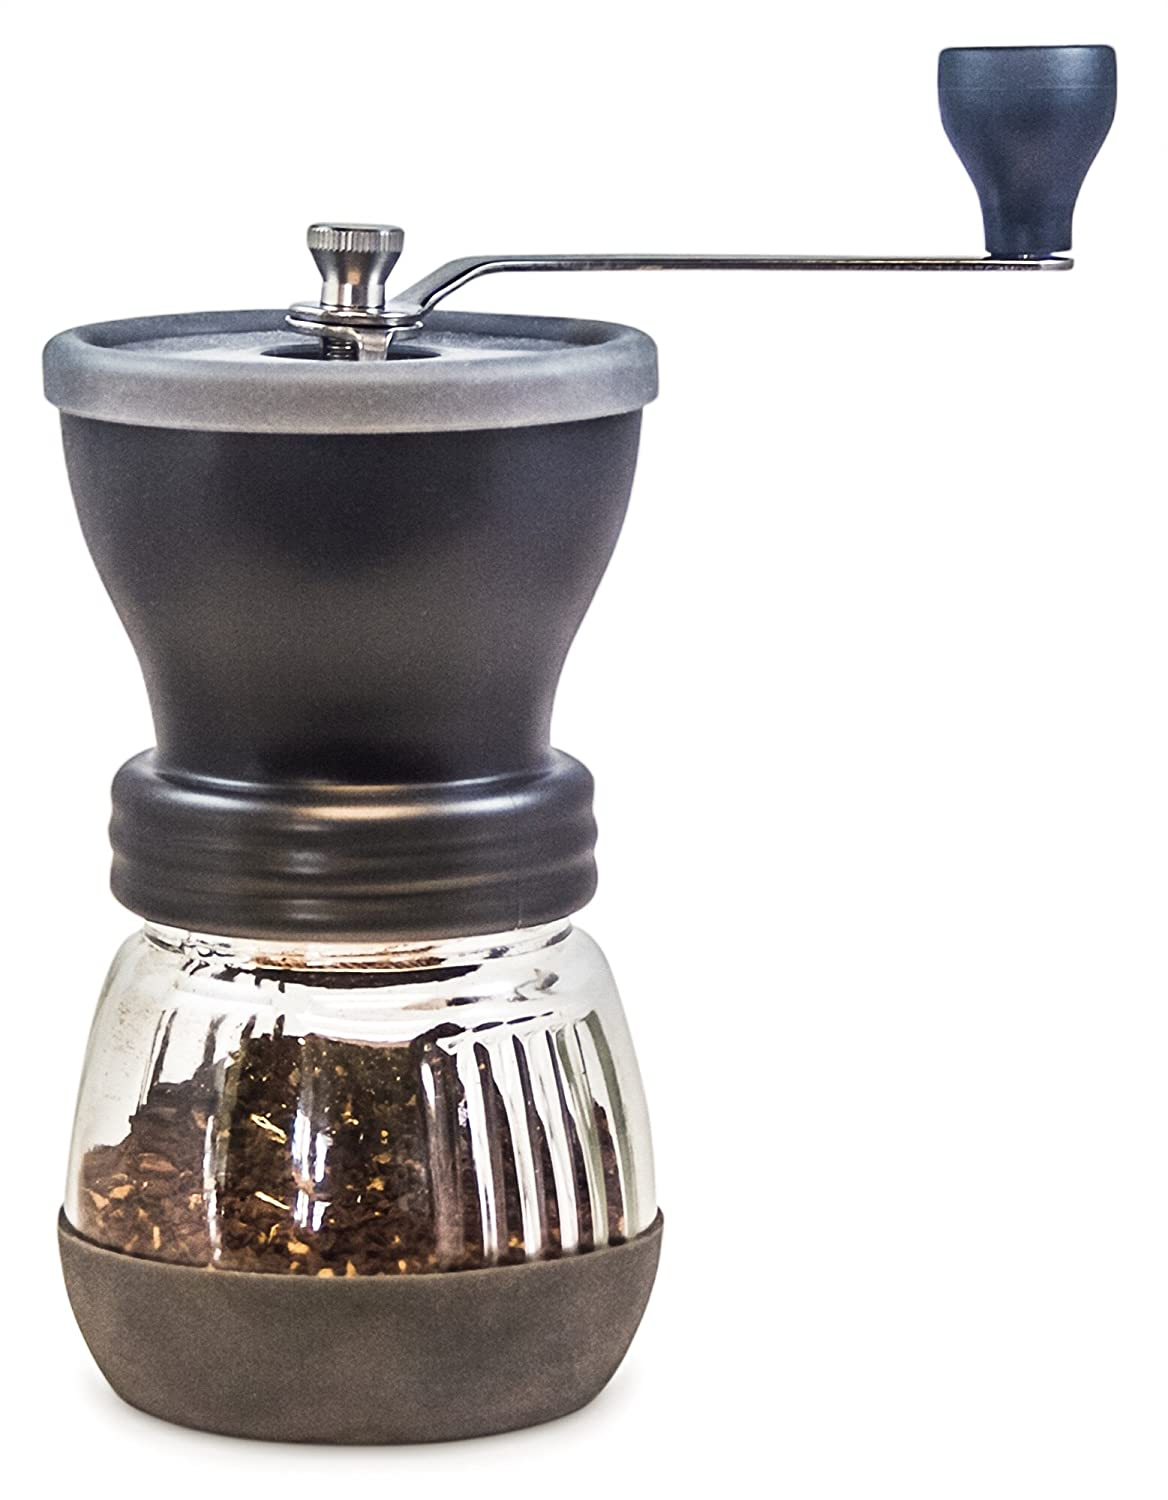 Khaw-Fee HG1B Manual Coffee Grinder with Conical Ceramic Burr